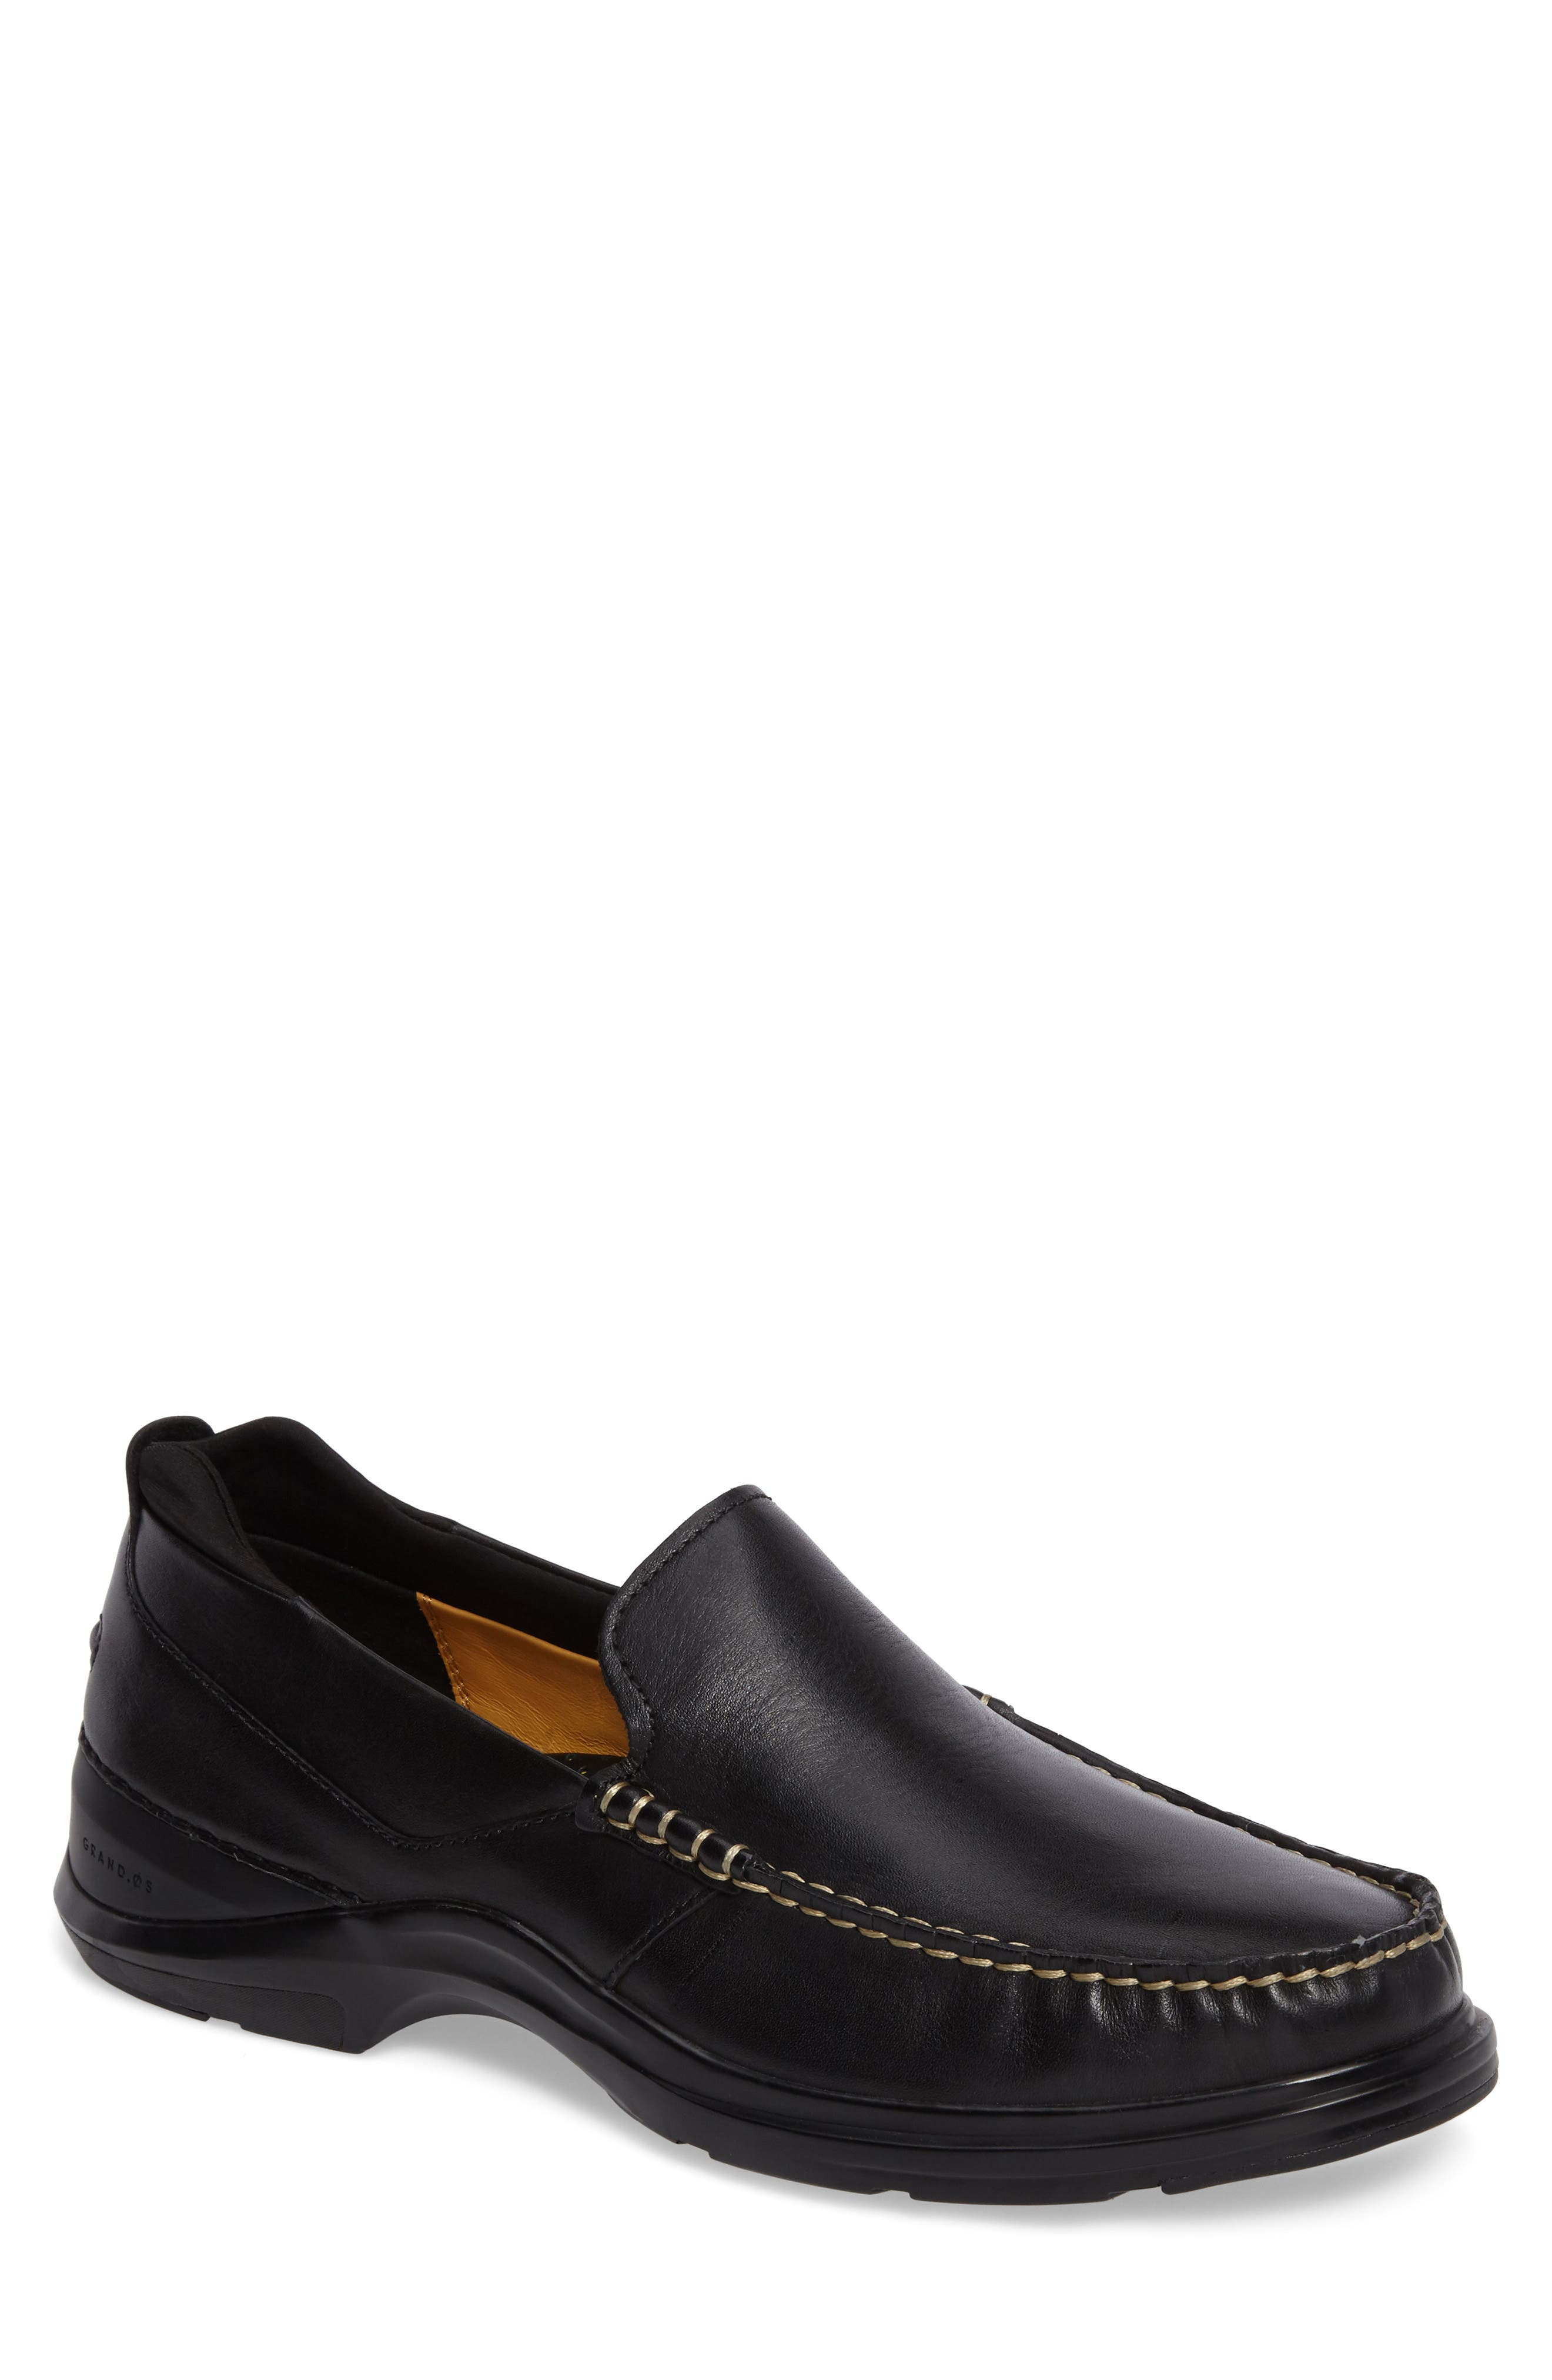 Bancroft Loafer,                             Main thumbnail 1, color,                             Black